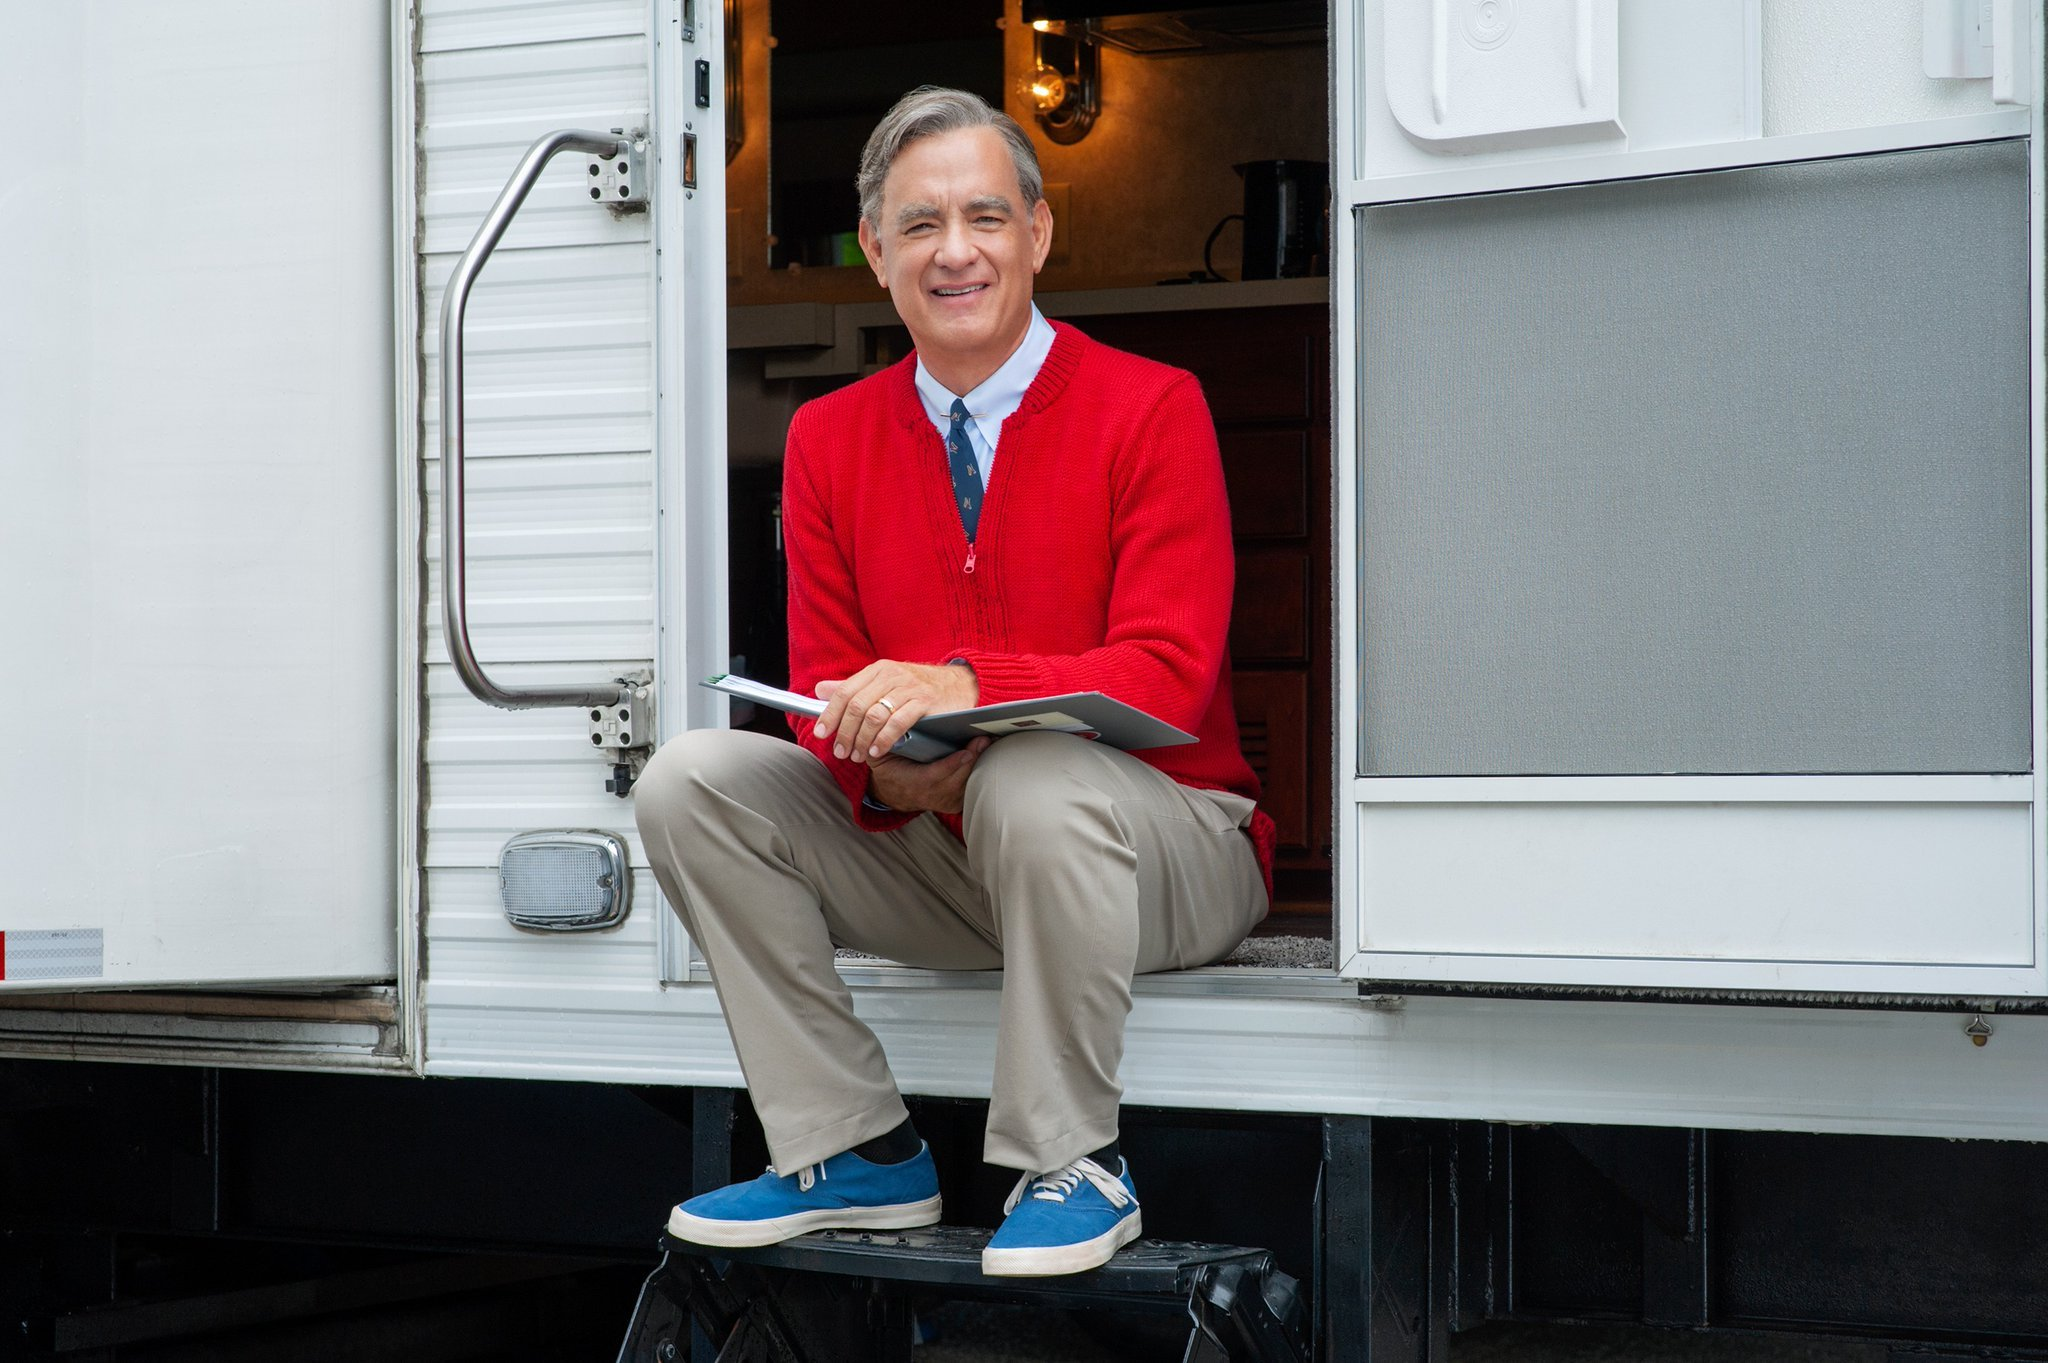 Dna Test Shows Tom Hanks Is Related To Mister Rogers Fox 59